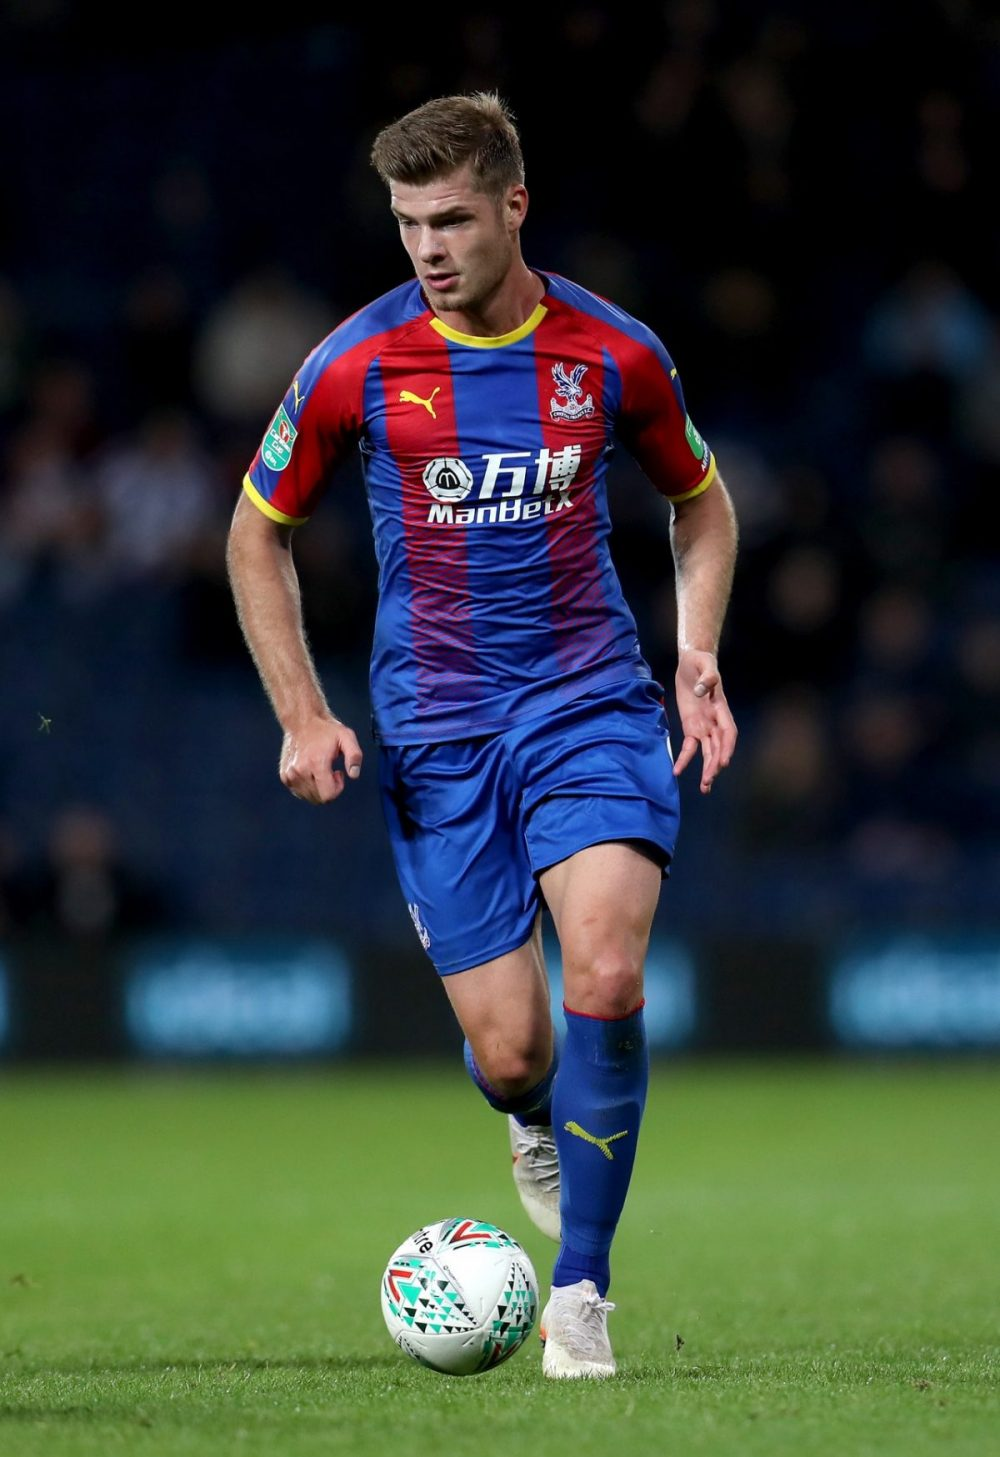 Palace Forward Suffers Ligament damage